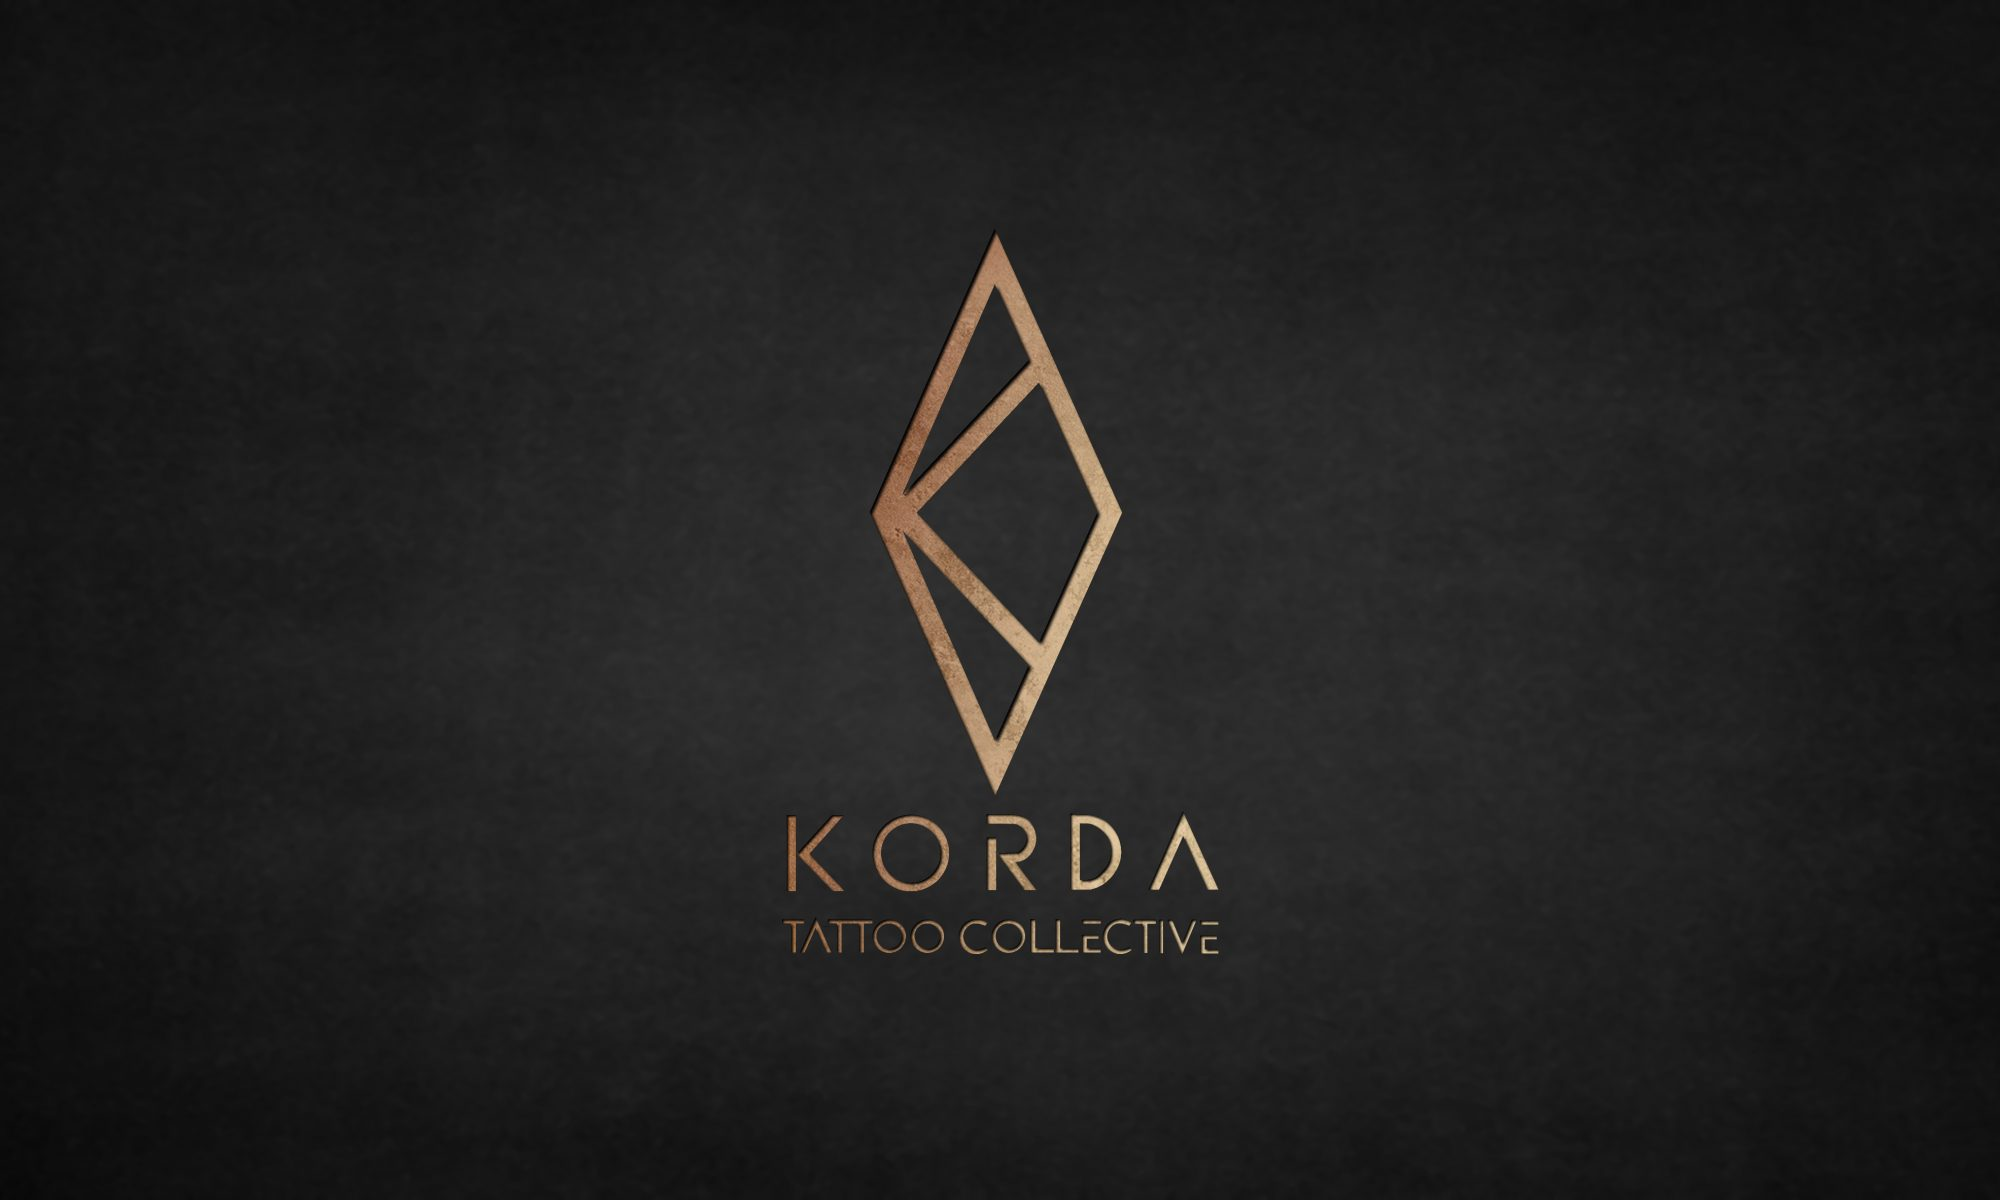 Korda Tattoo Collective